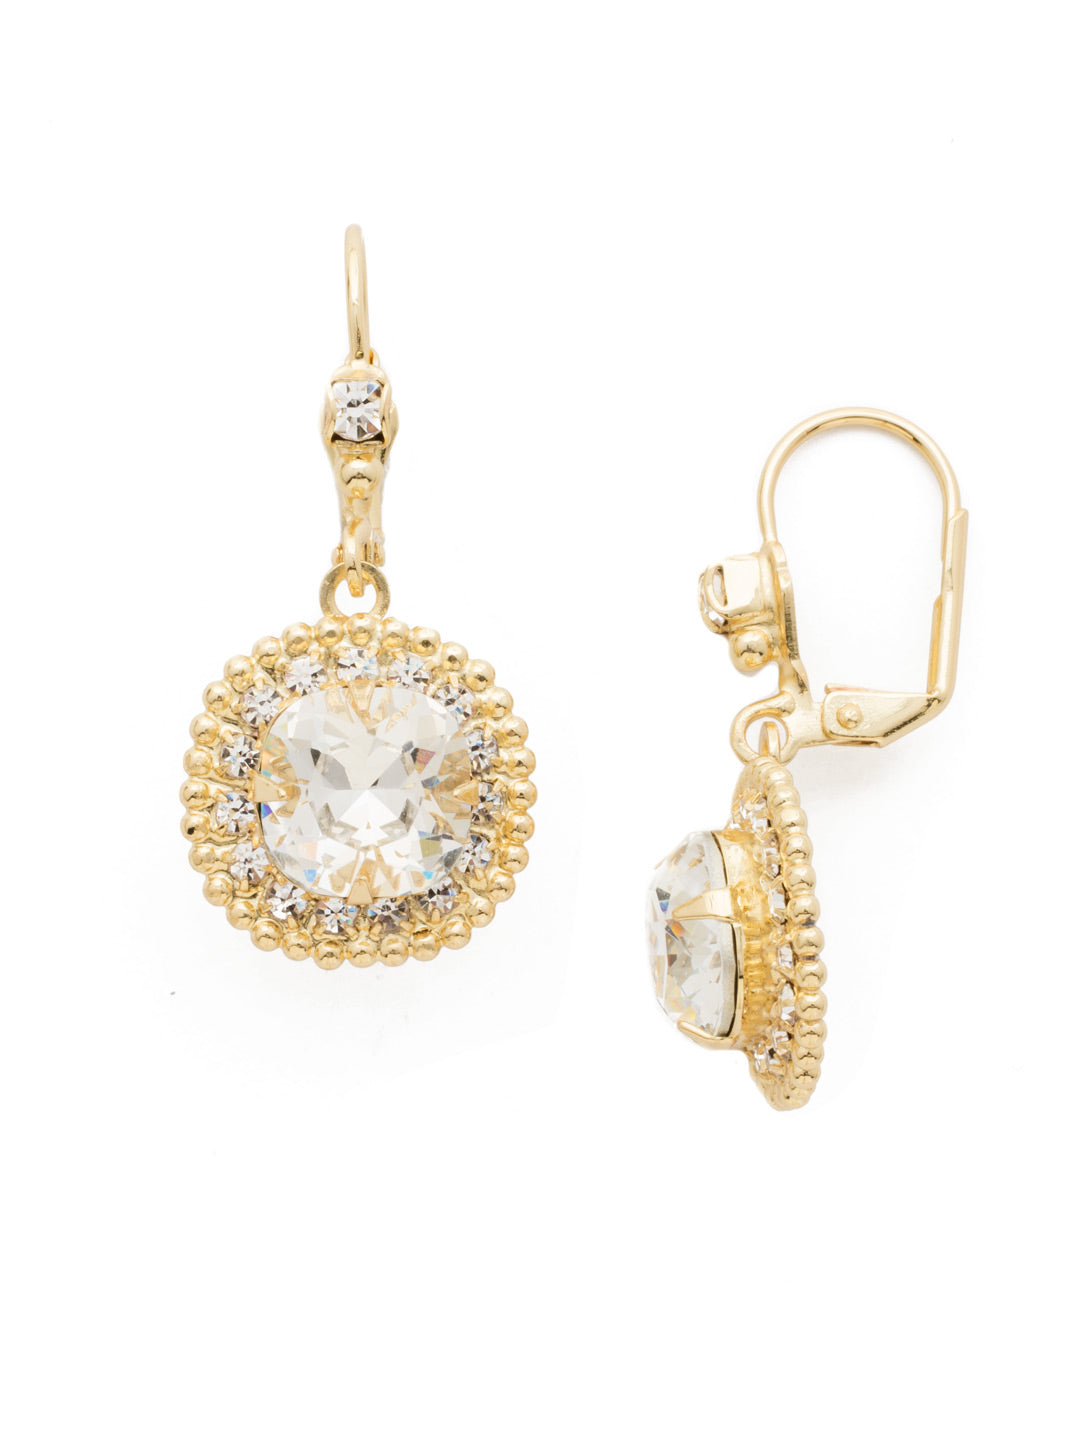 Cushion Cut Crown Earring - EDK4BGCRY